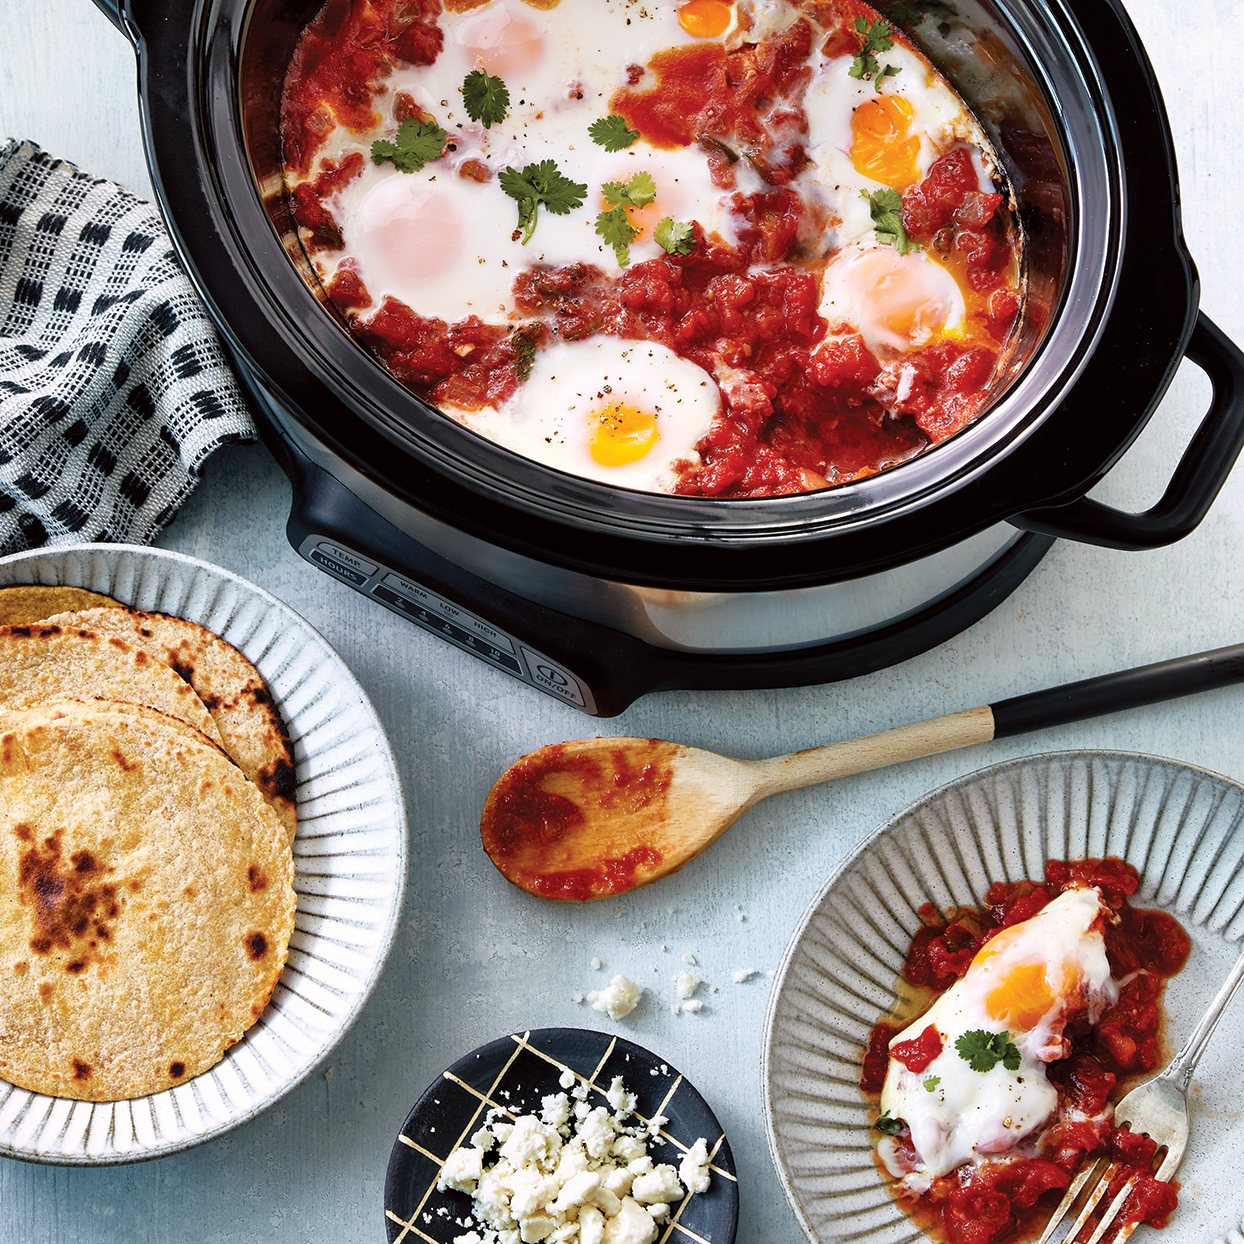 Start your day with hearty, slightly spicy shakshuka full of Southwestern flavor. To avoid one large egg blob on top, be sure to make wells in the sauce using a spoon. It's important to use corn tortillas and not flour tortillas if you're going gluten free. Lightly toast the tortillas, if desired.